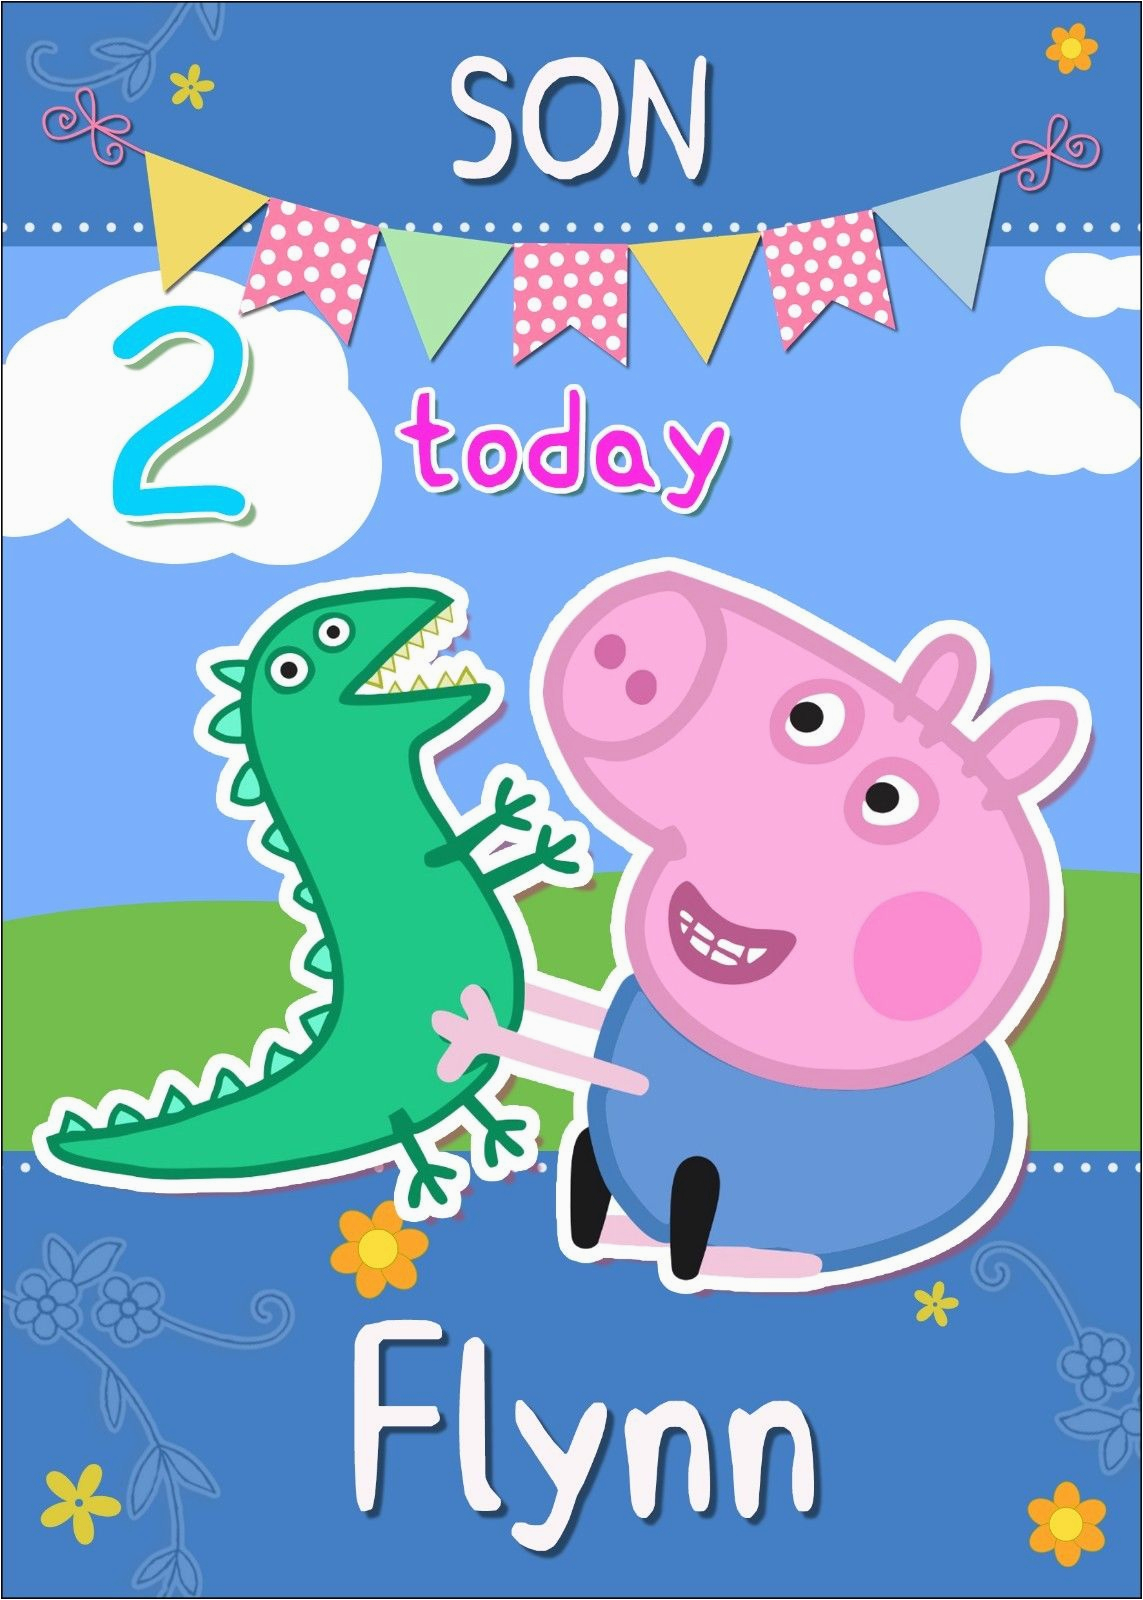 custom singing birthday cards funny collection peppa pig card star wars party ideas for adults best